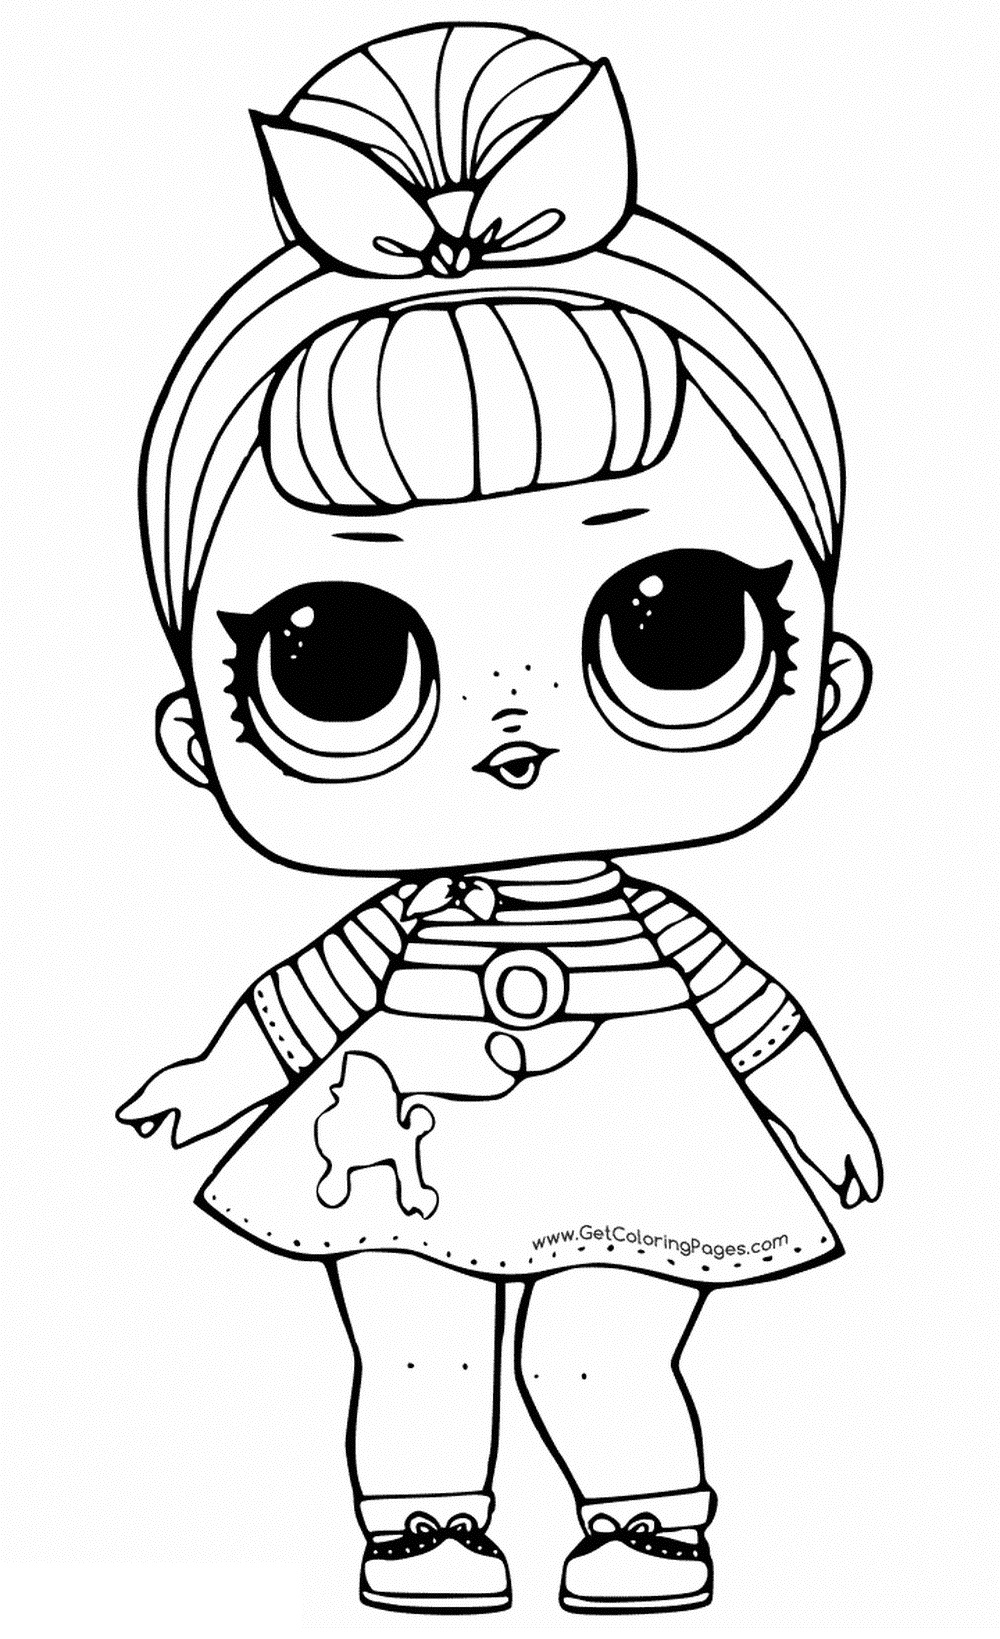 coloring images lol coloring pages of lol surprise dolls 80 pieces of black images lol coloring